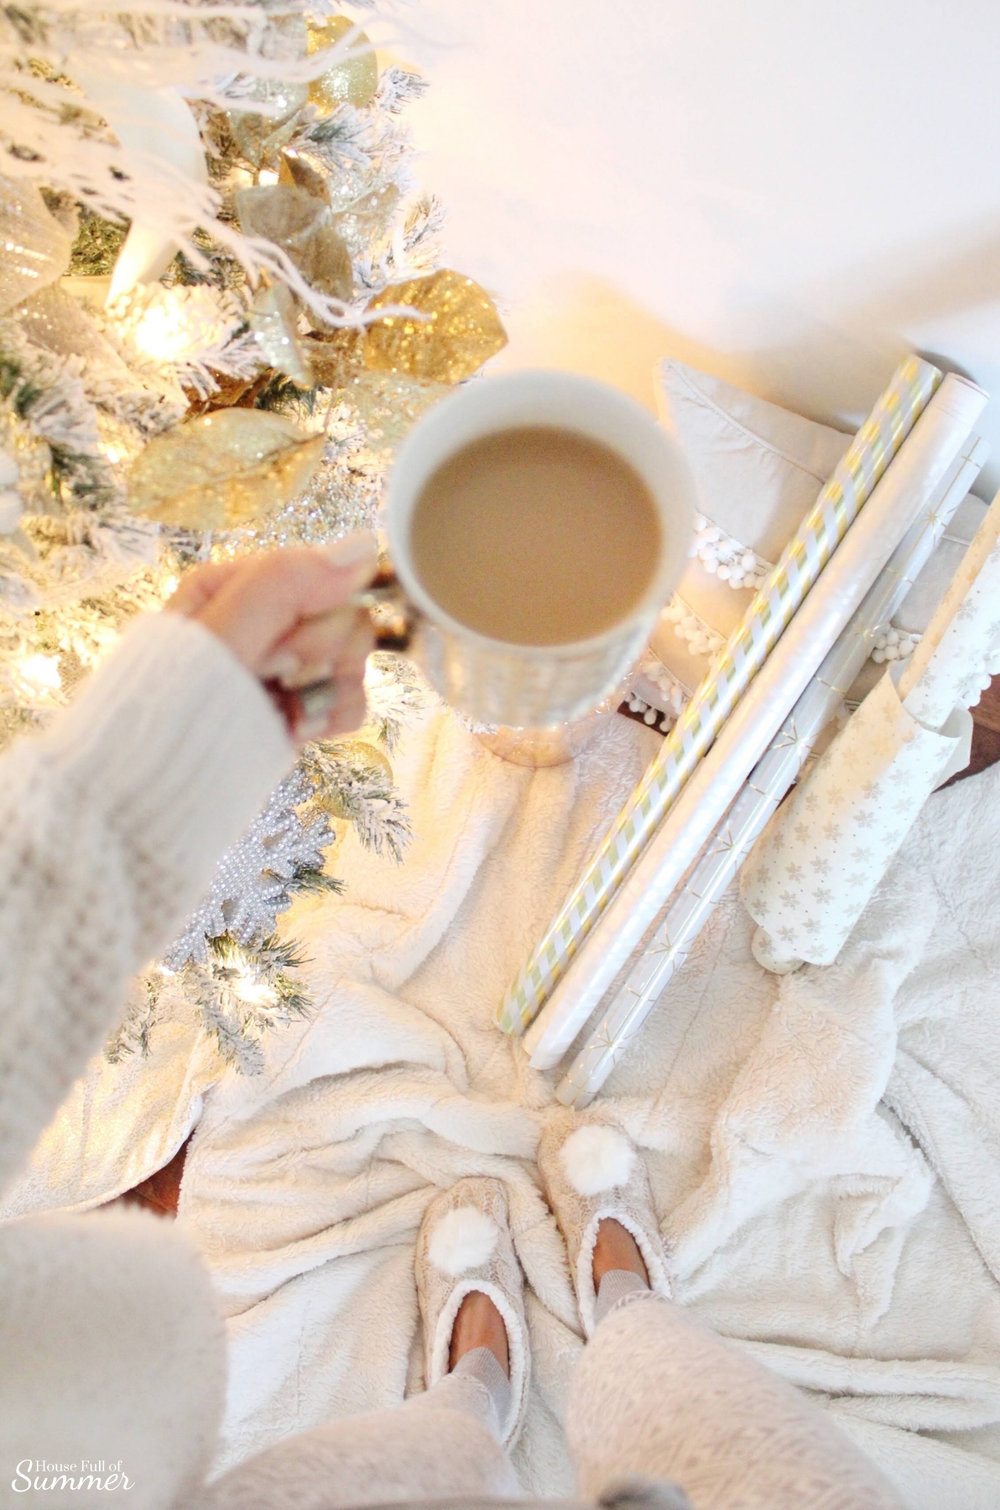 Cozy Christmas Mornings PJs, coffee, elegant gift wrapping, pom pom slippers, fuzzy blankets, fur throw, holiday outfits, leisure wear, casual style | House Full of Summer glam gold Christmas tree, neutral decor, jute rug